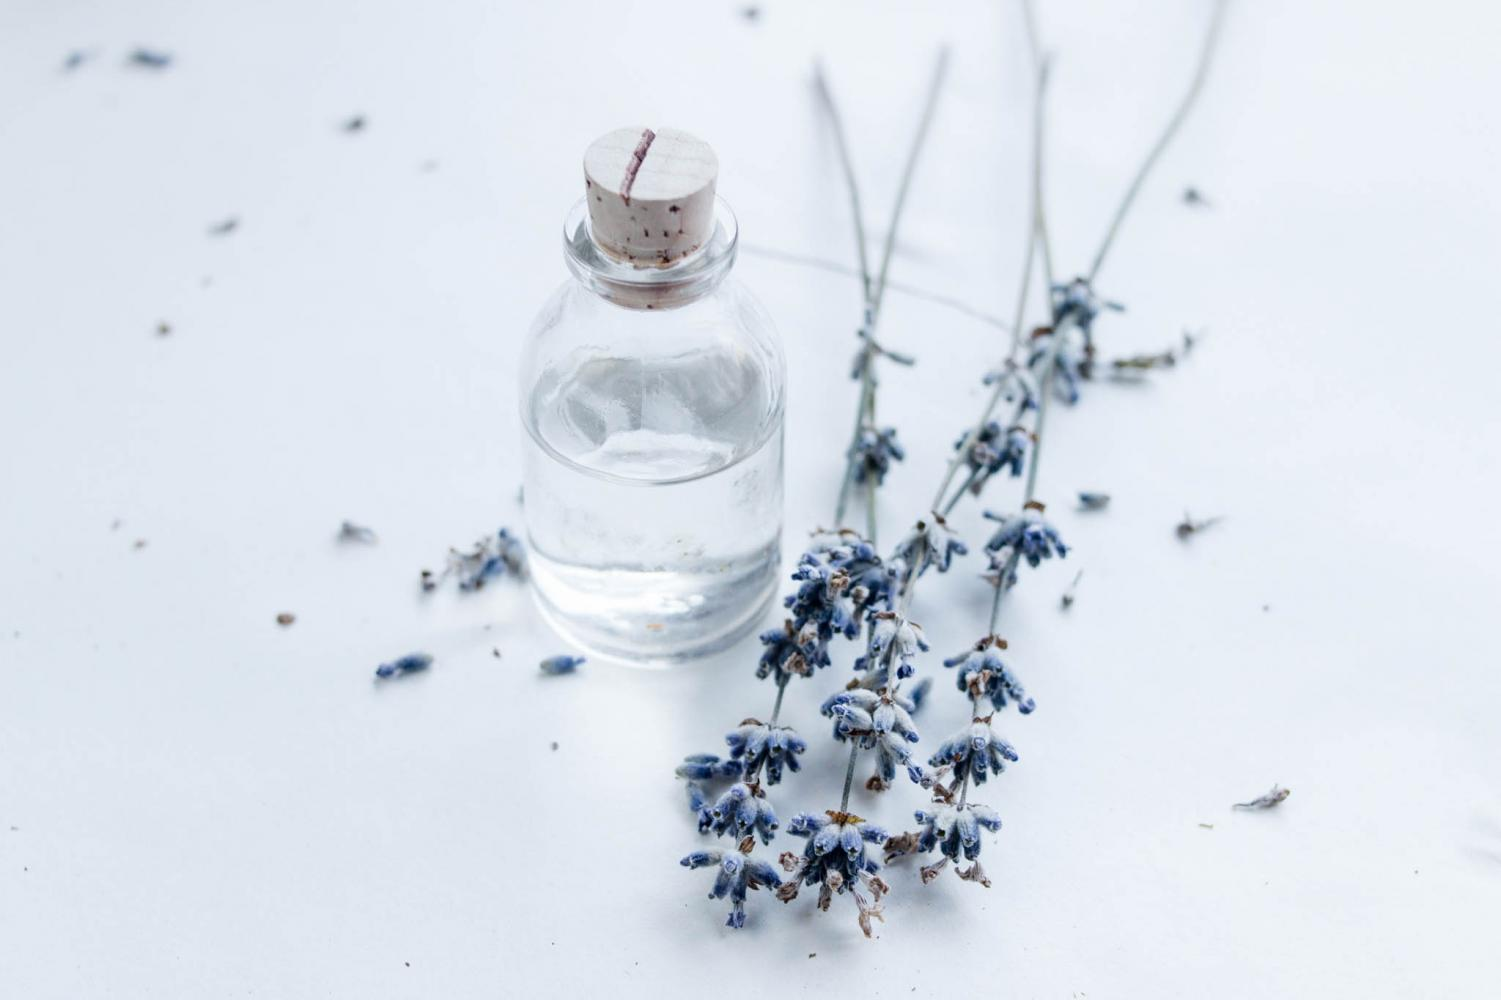 A small water jar next to lavender.